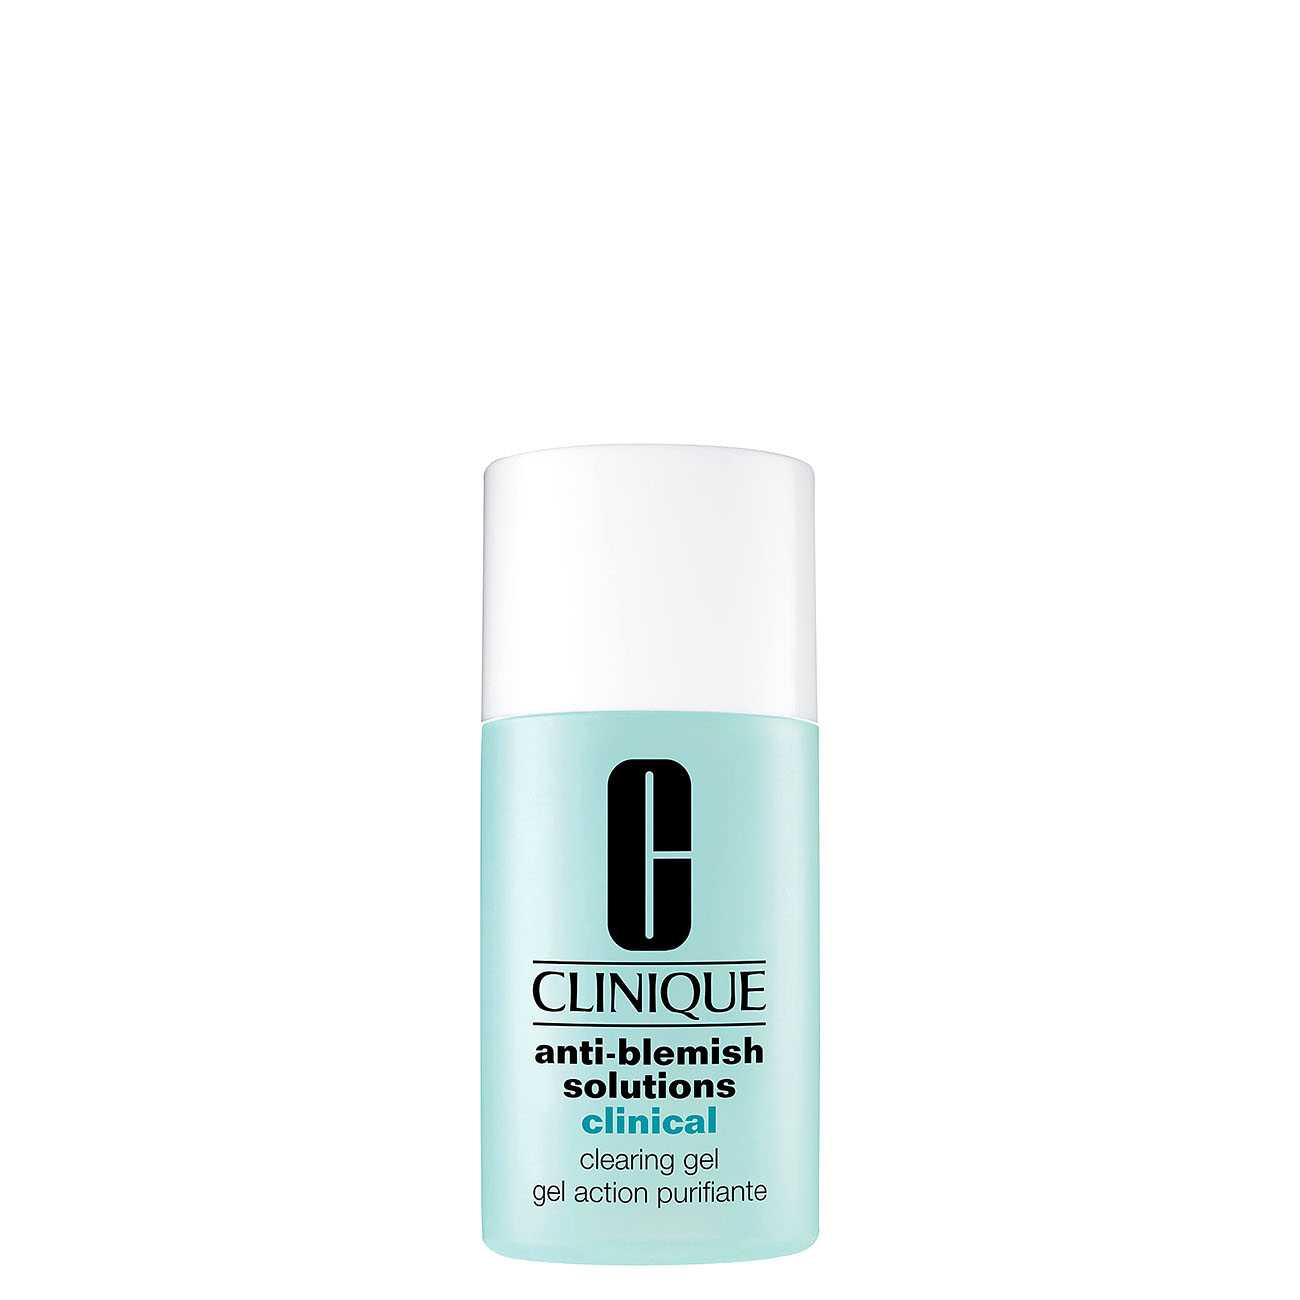 ANTI BLEMISH SOLUTIONS CLINICAL CLEARING GEL 30 ML